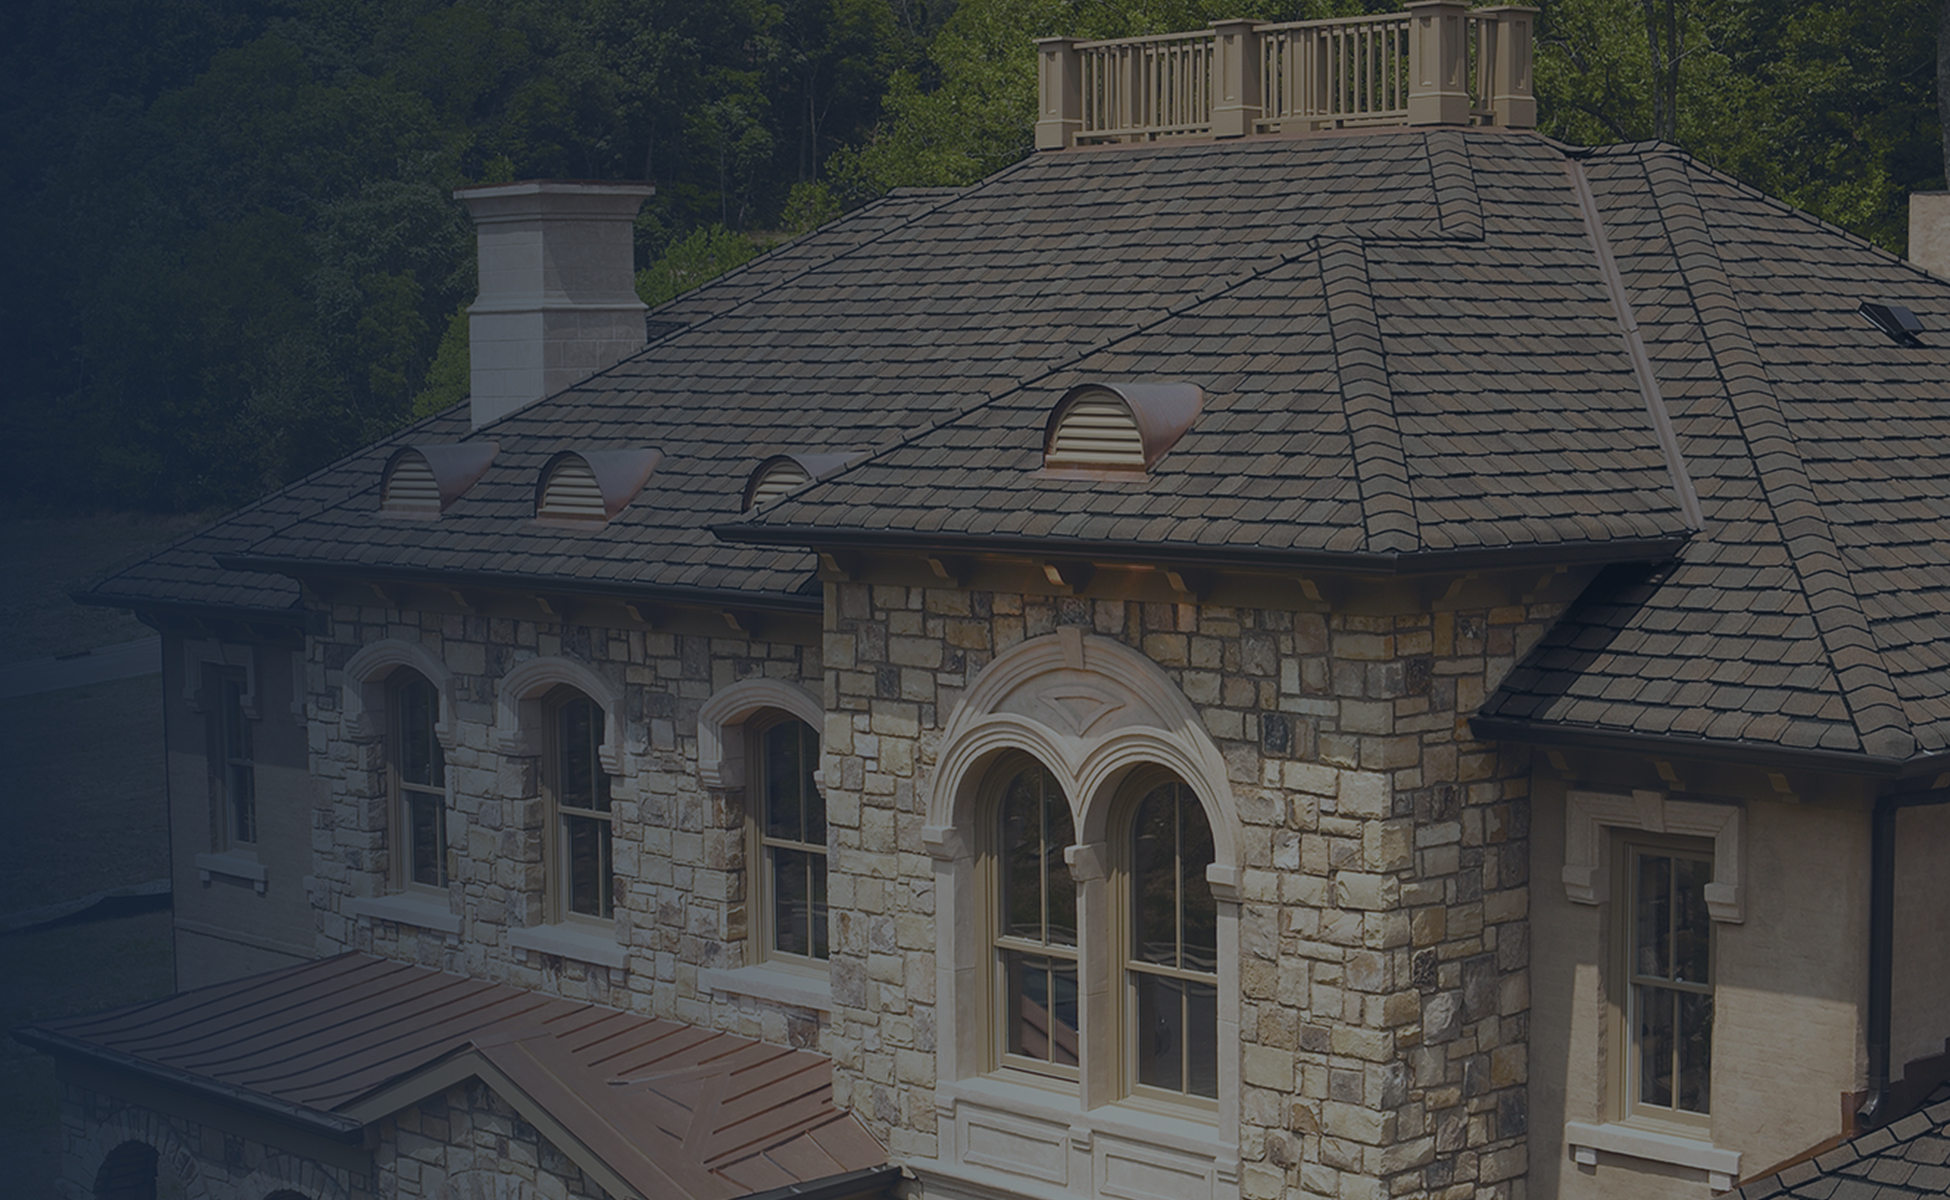 Roof homepage Dover, Pa